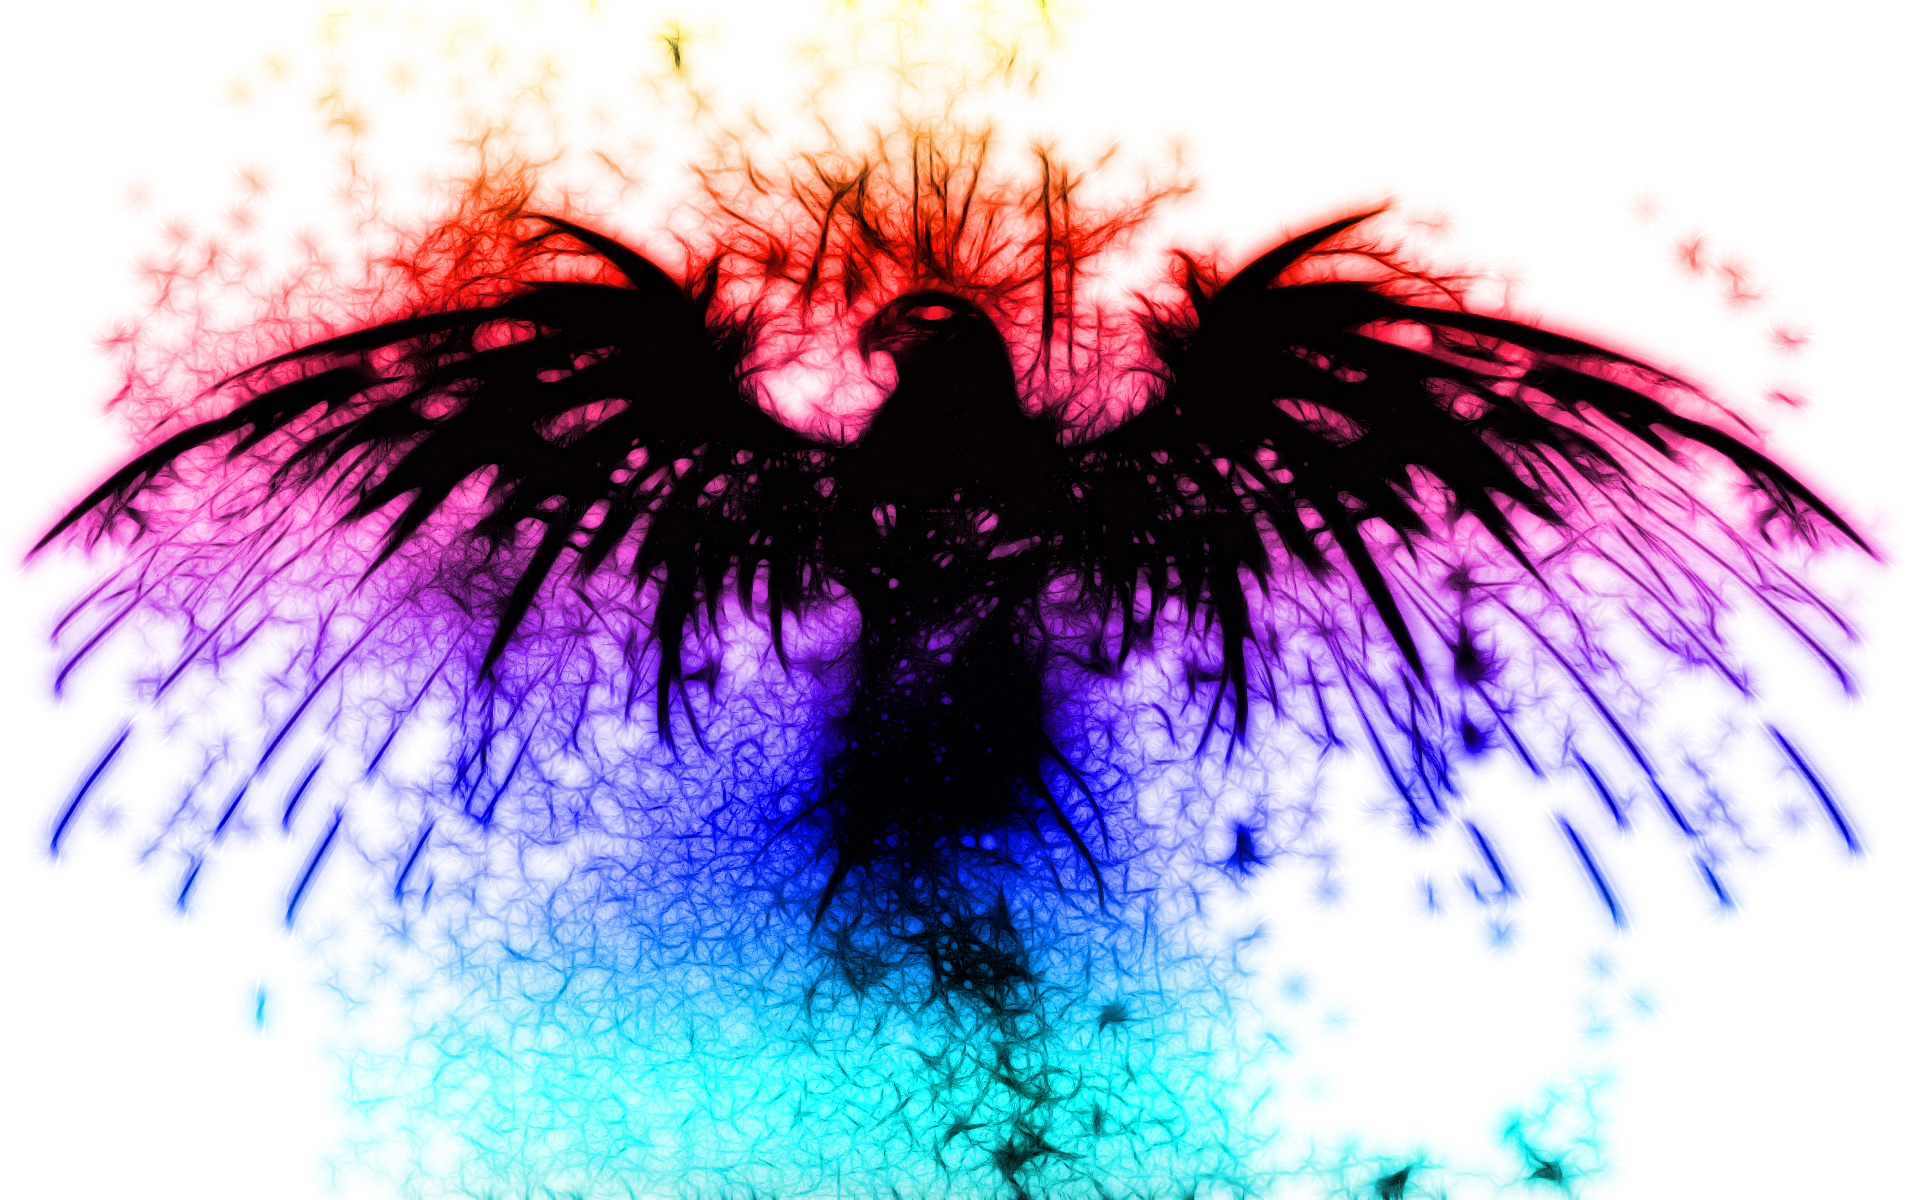 Abstract Phoenix Bird Wallpaper HD